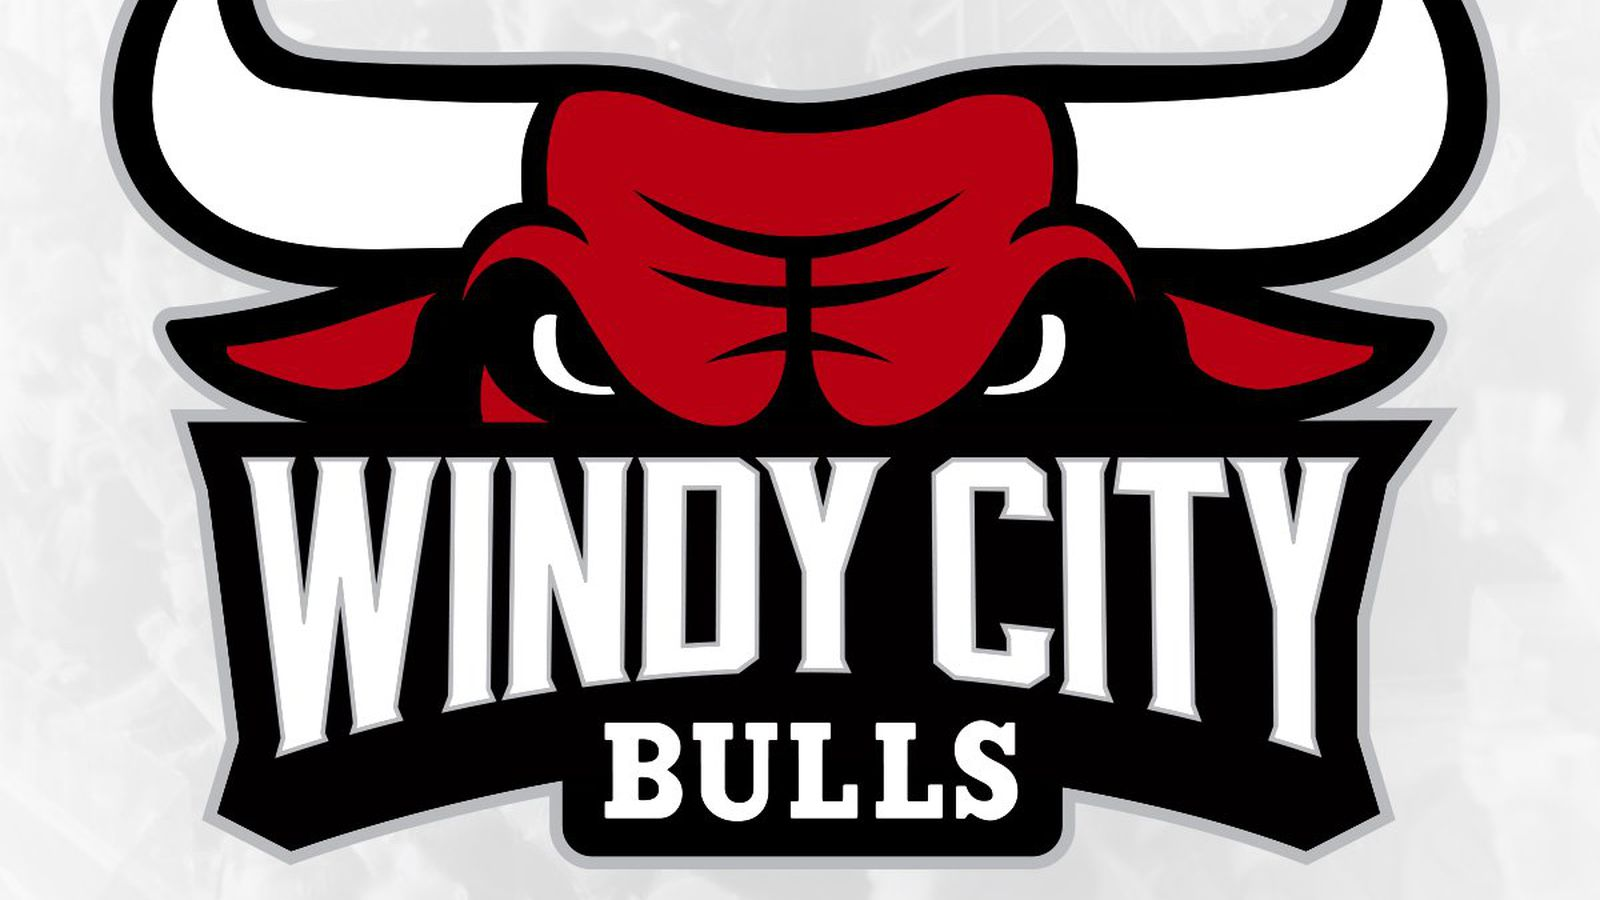 why is the d league bulls logo angrier than the chicago bulls logo